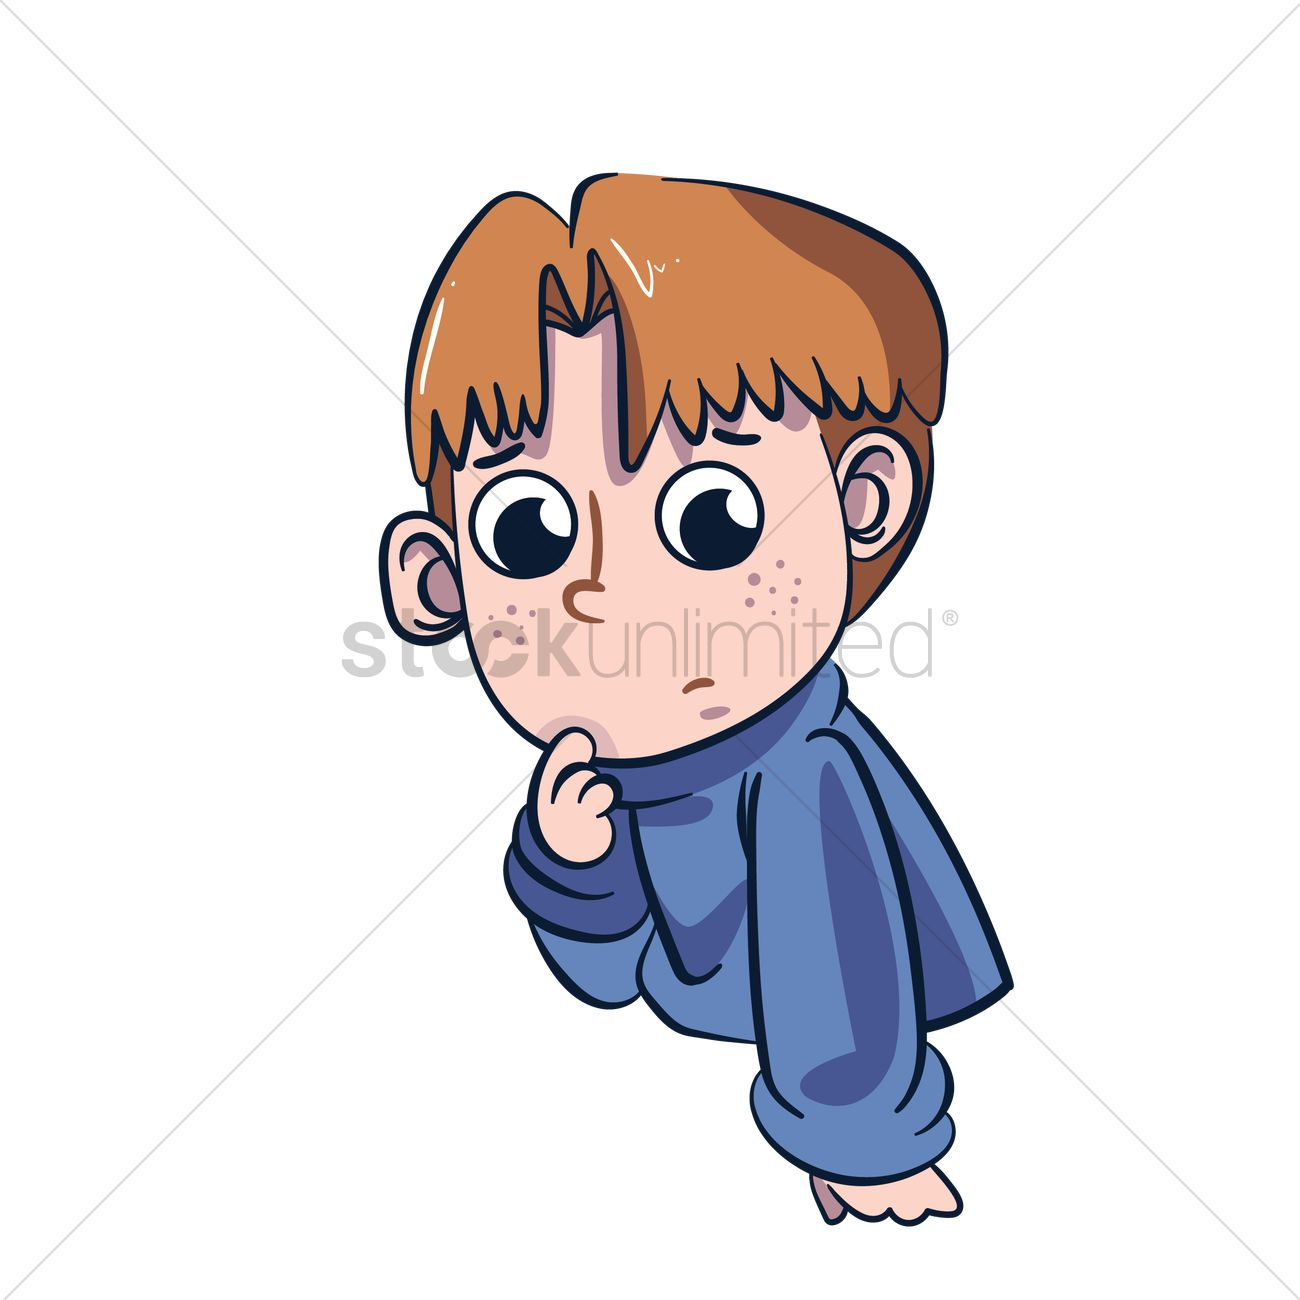 cartoon character thinking vector image - 1957493 | stockunlimited